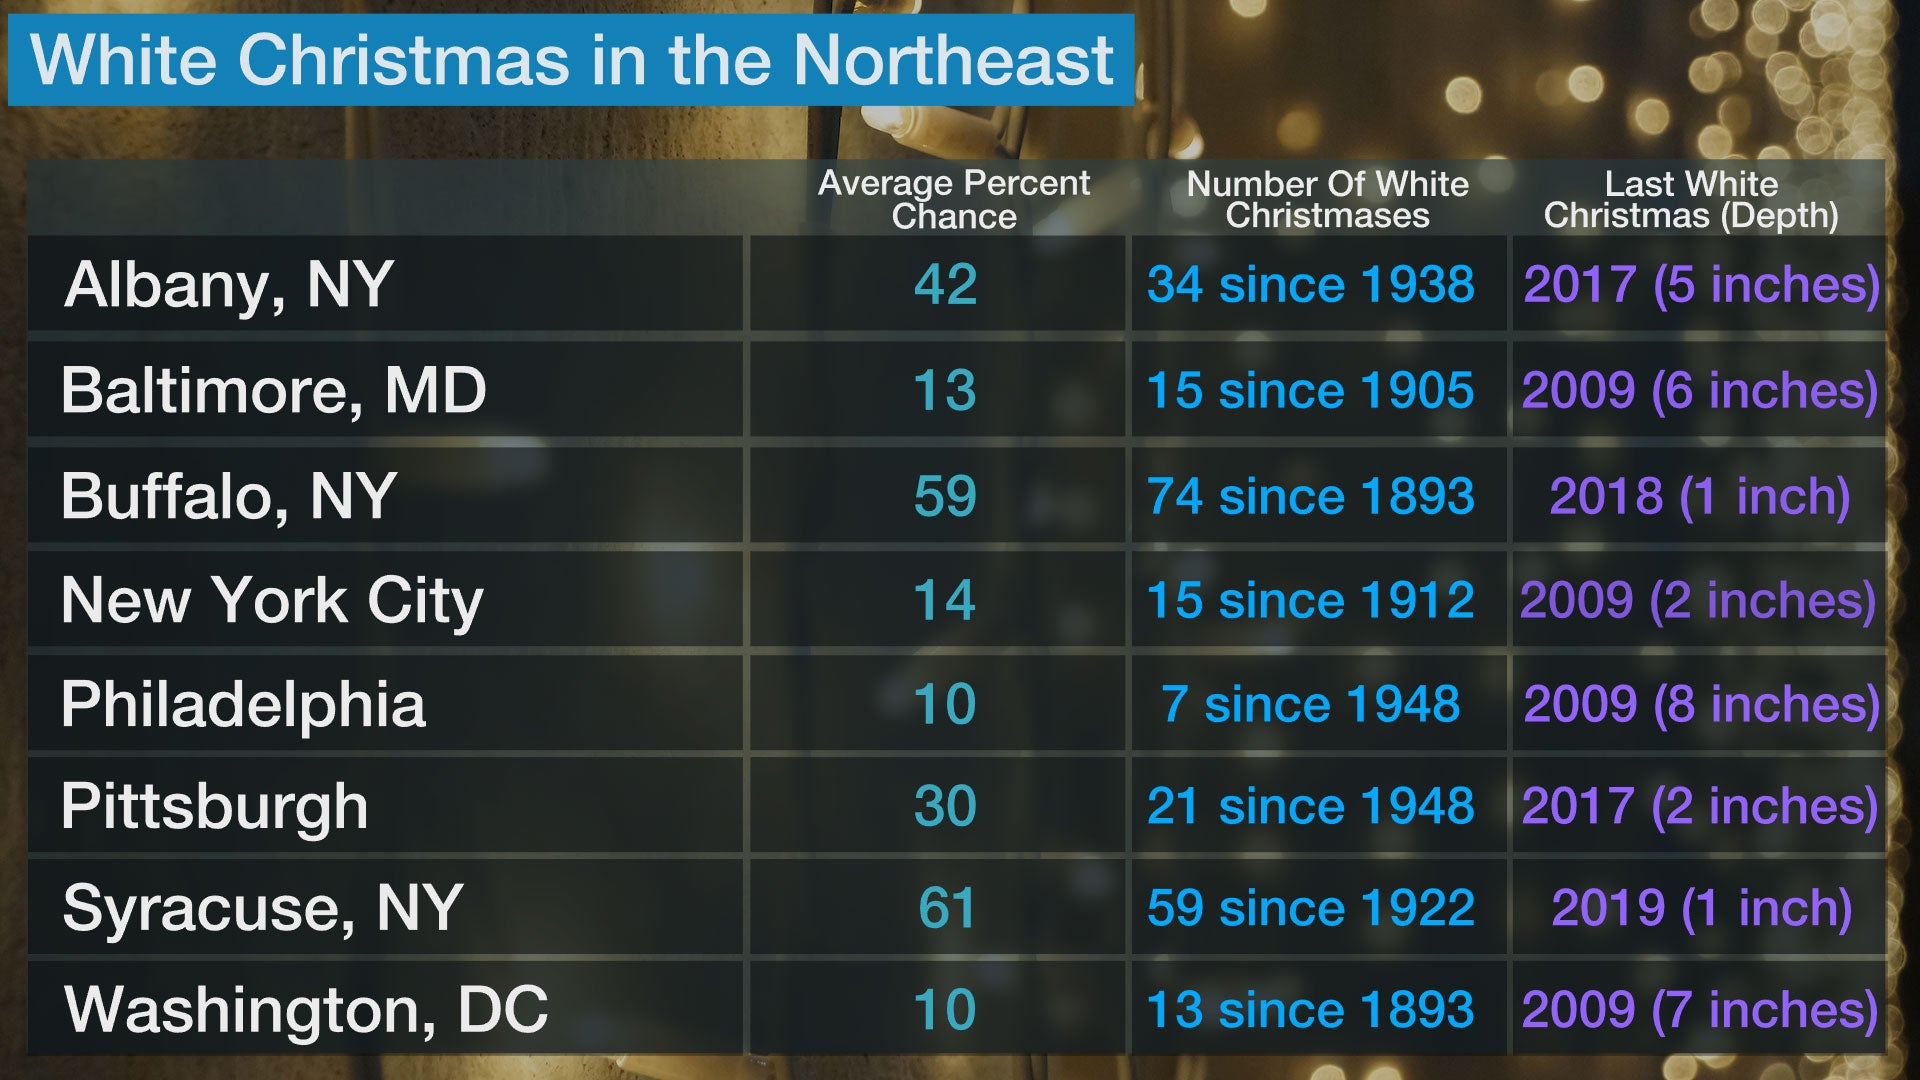 Chances For A White Christmas 2021 White Christmas Forecast Here S Who Could See Snow On The Ground This Year The Weather Channel Articles From The Weather Channel Weather Com